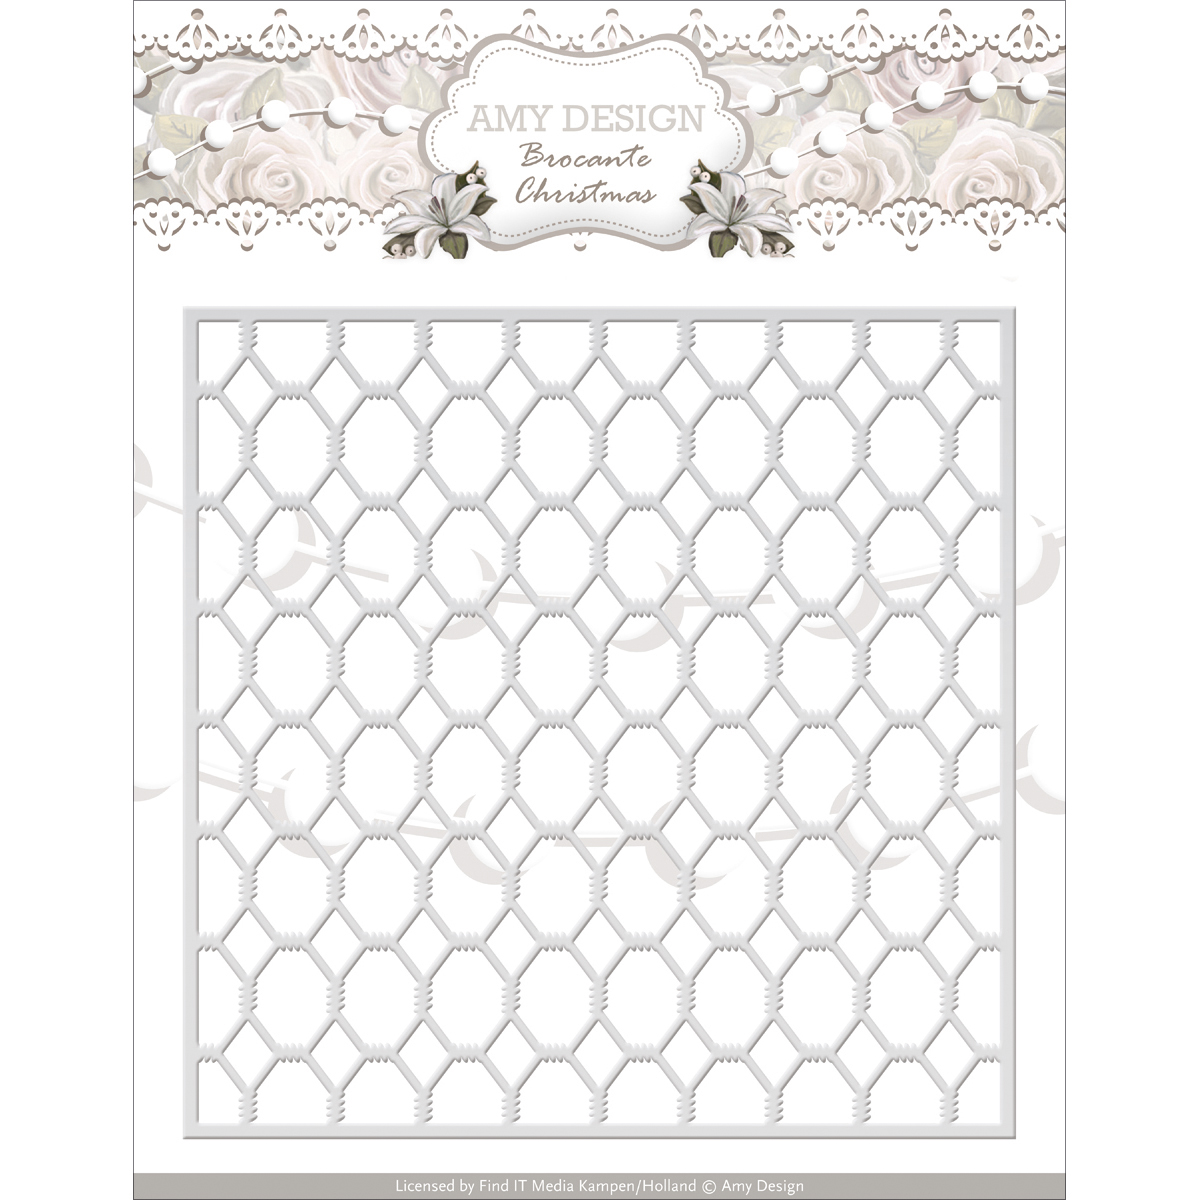 Wire Frame - Find It Trading Amy Design Brocante Christmas Die